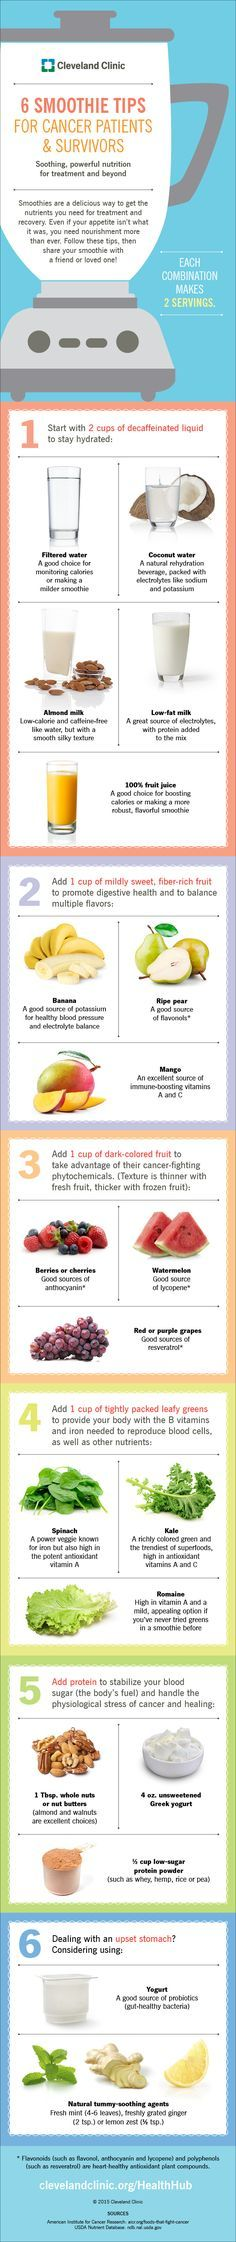 USEFUL MATERIAL:  Just For U ♥♥ 6 tips for  Smoothies for #cancer patients and survivors. #recipes #infographic